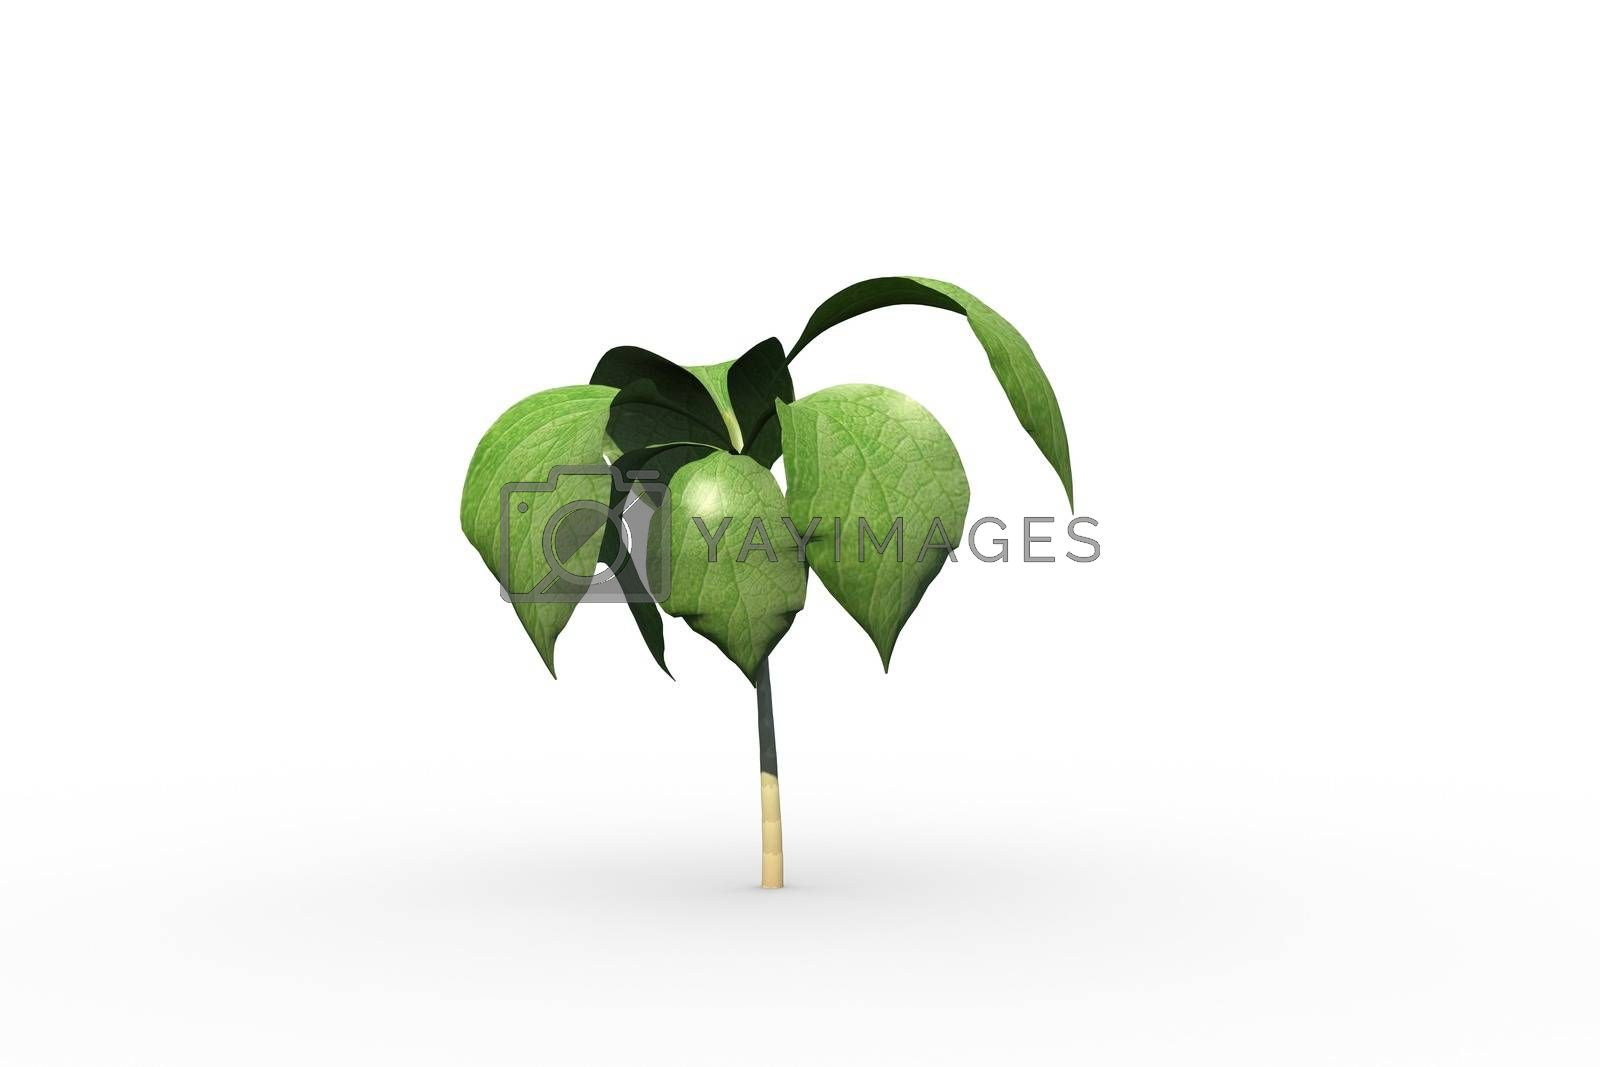 Royalty free image of Little green seedling with leaves growing by Wavebreakmedia